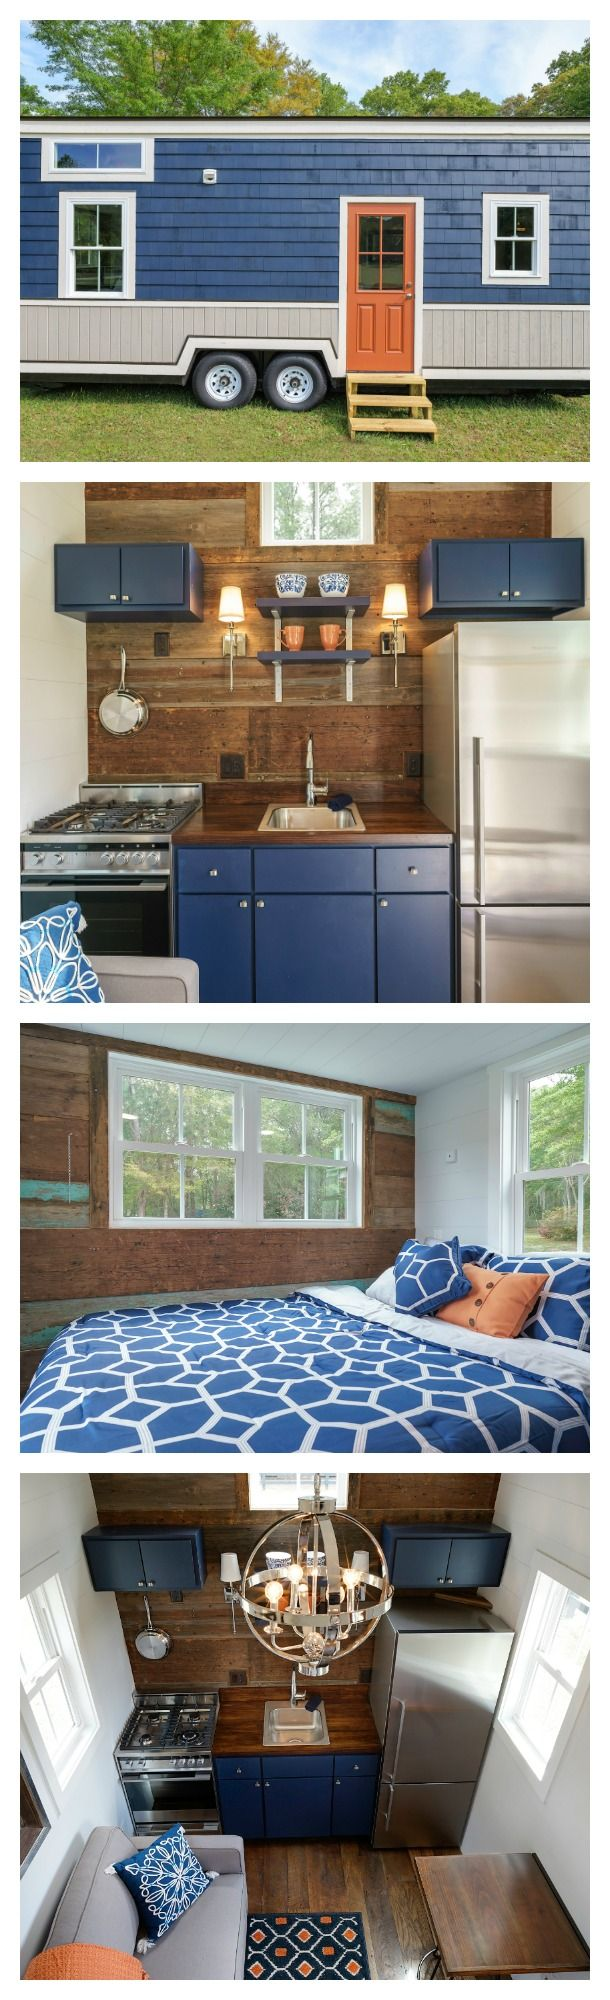 This 280-square-feet tiny house is here to prove anyone who claims you can't use dark colors in a small room wrong. Instead of going light and airy, the Indigo Tiny Home by Driftwood Homes USA is decorated with pops of dark, moody colors.